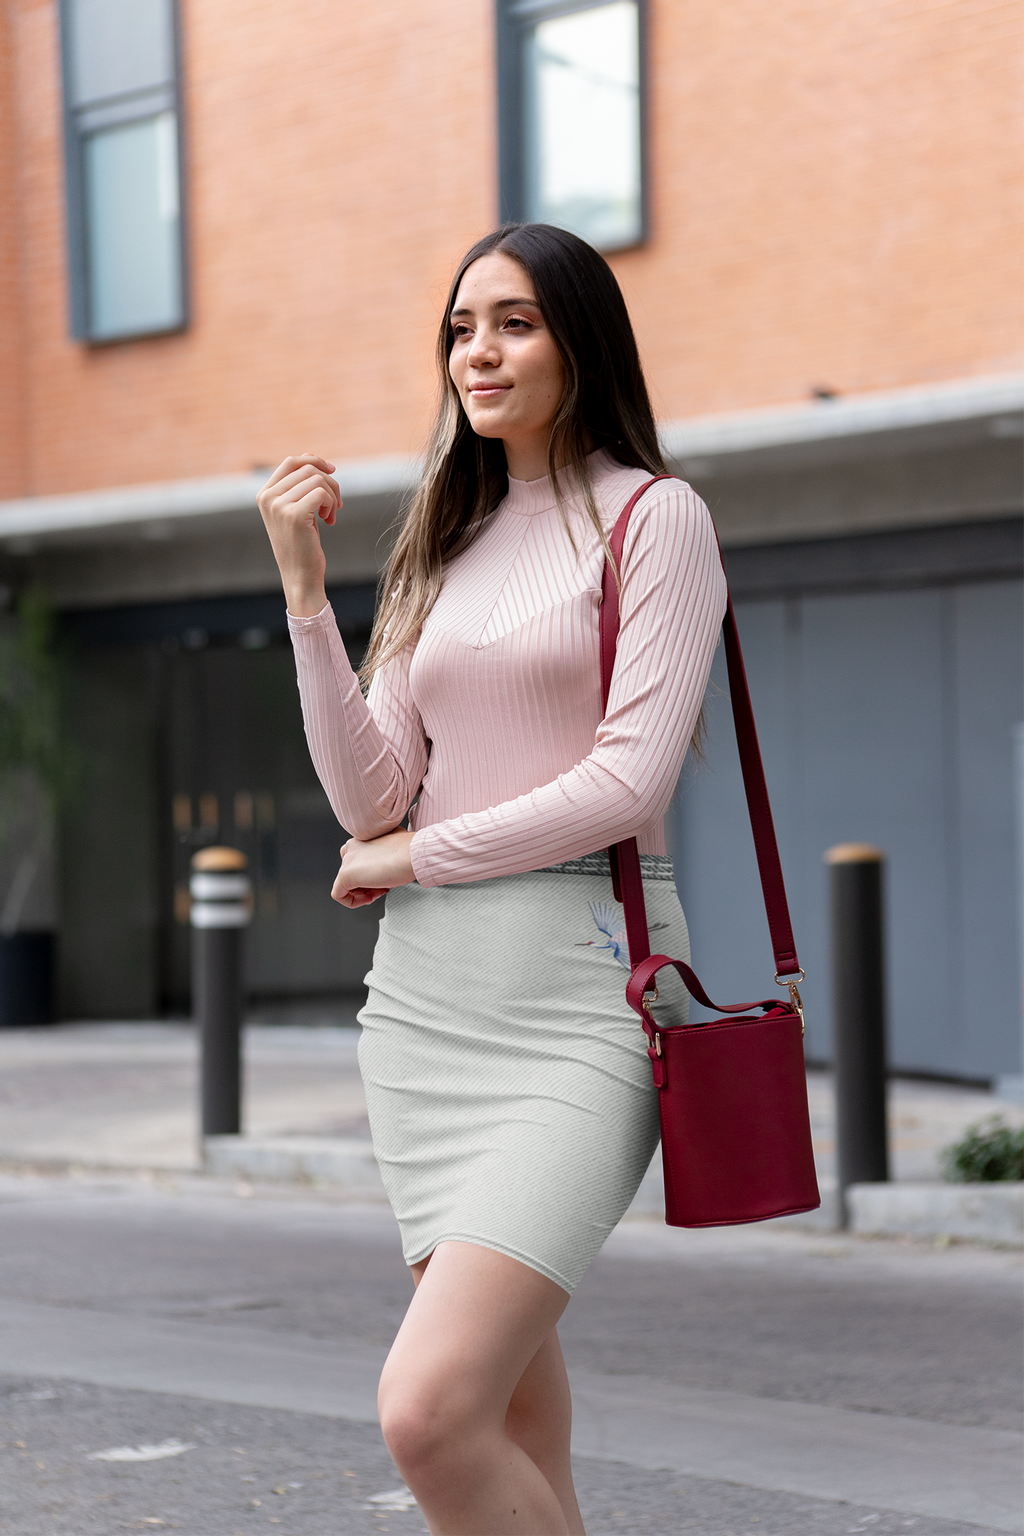 pencil-skirt-mockup-of-a-woman-on-the-street-28670 (1).png